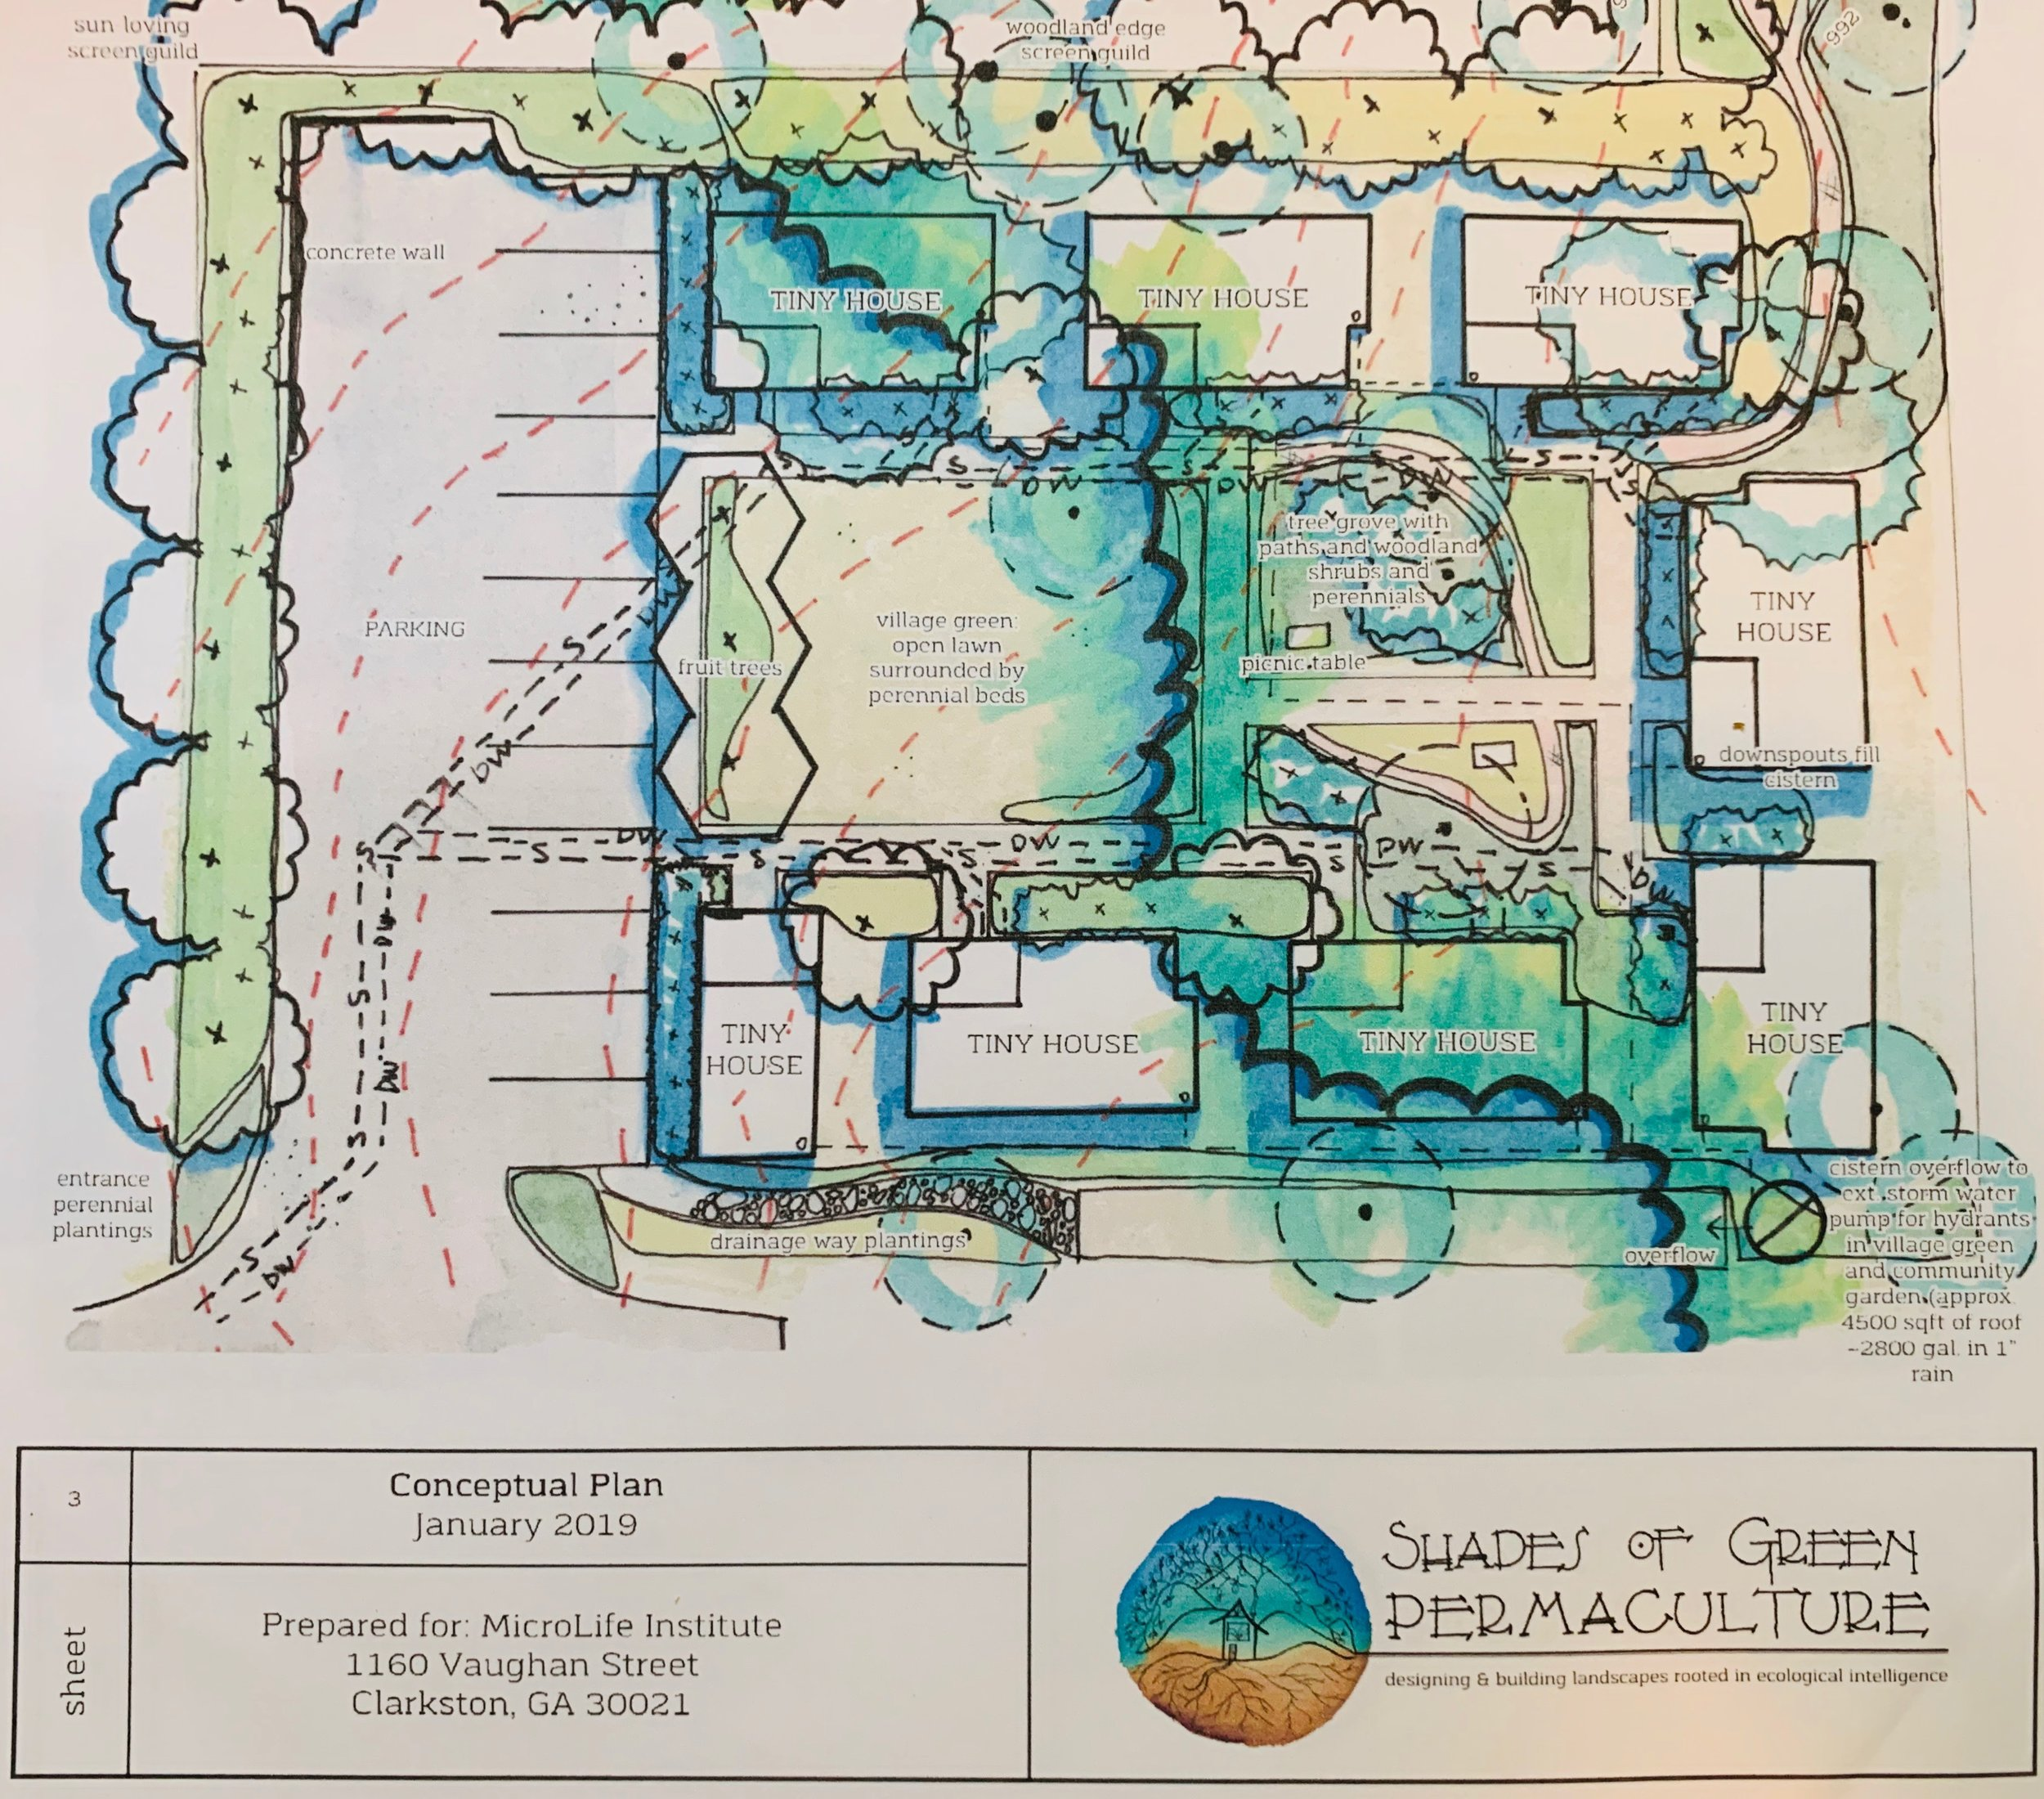 Permaculture Landscape Design by: Shades of Green Permaculture